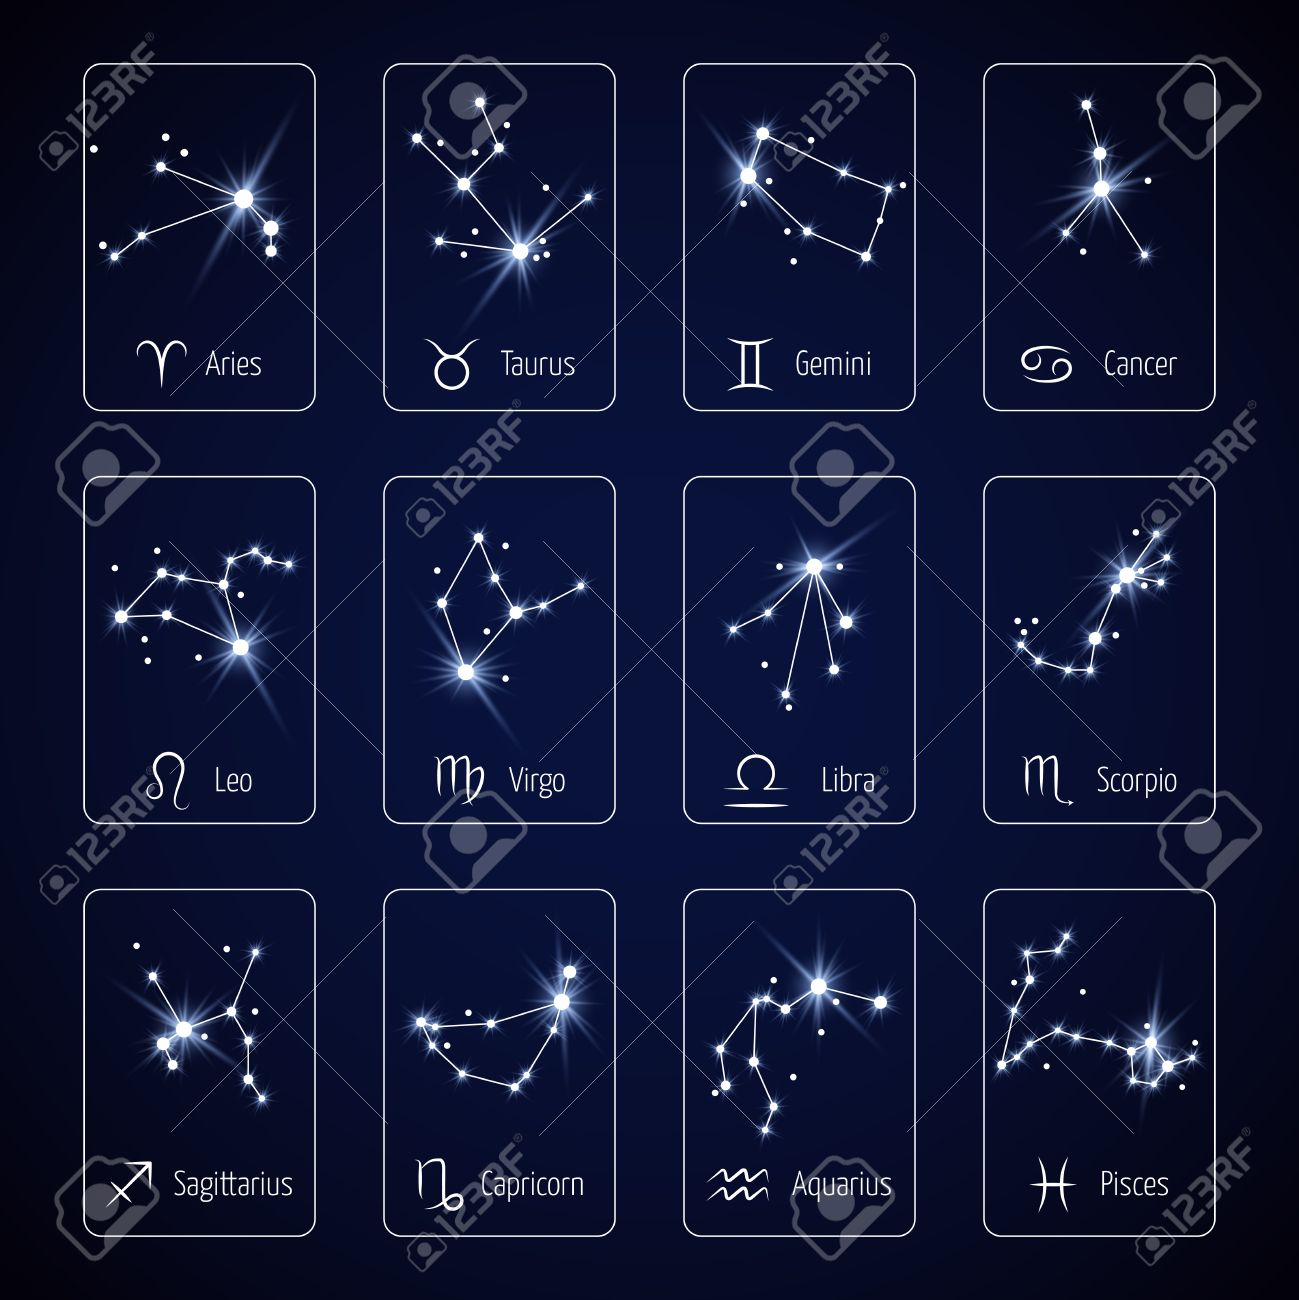 Zodiac sign all horoscope constellation stars for mobile application vector zodiac sign all horoscope constellation stars for mobile application vector template constellation for horoscope and zodiac constellation virgo ccuart Images